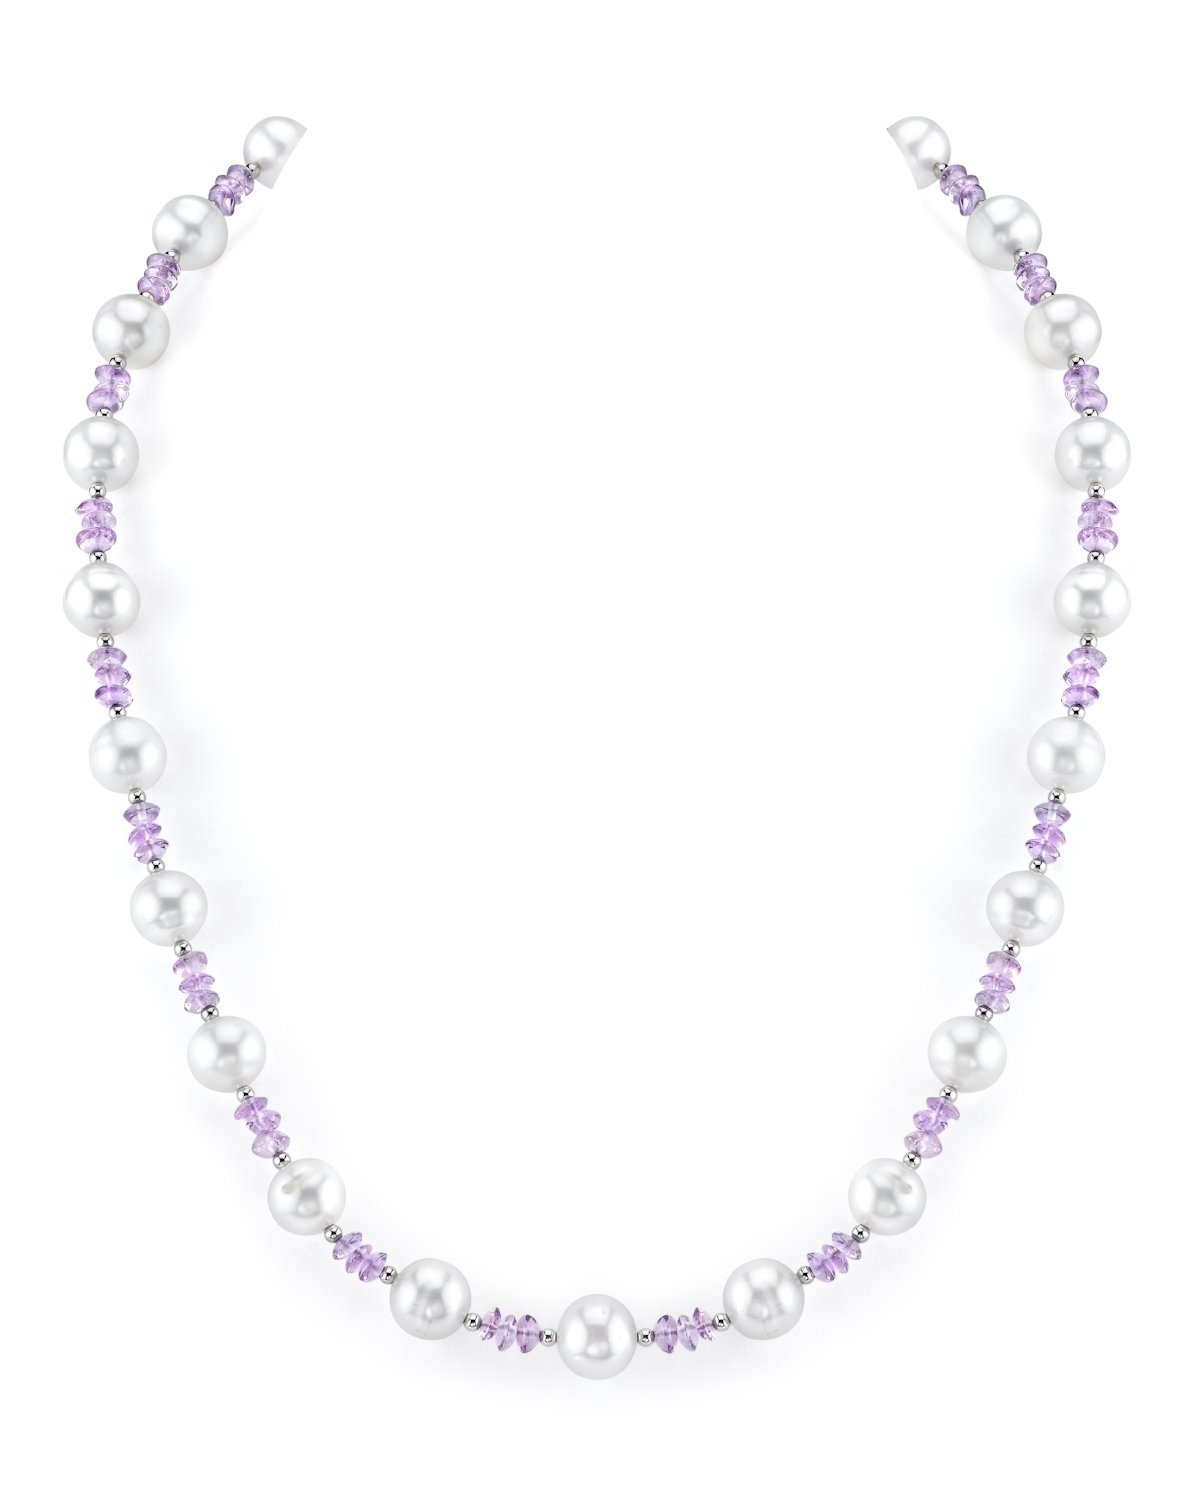 8-9mm Genuine White Freshwater Cultured Pearl & Amethyst Necklace for Women